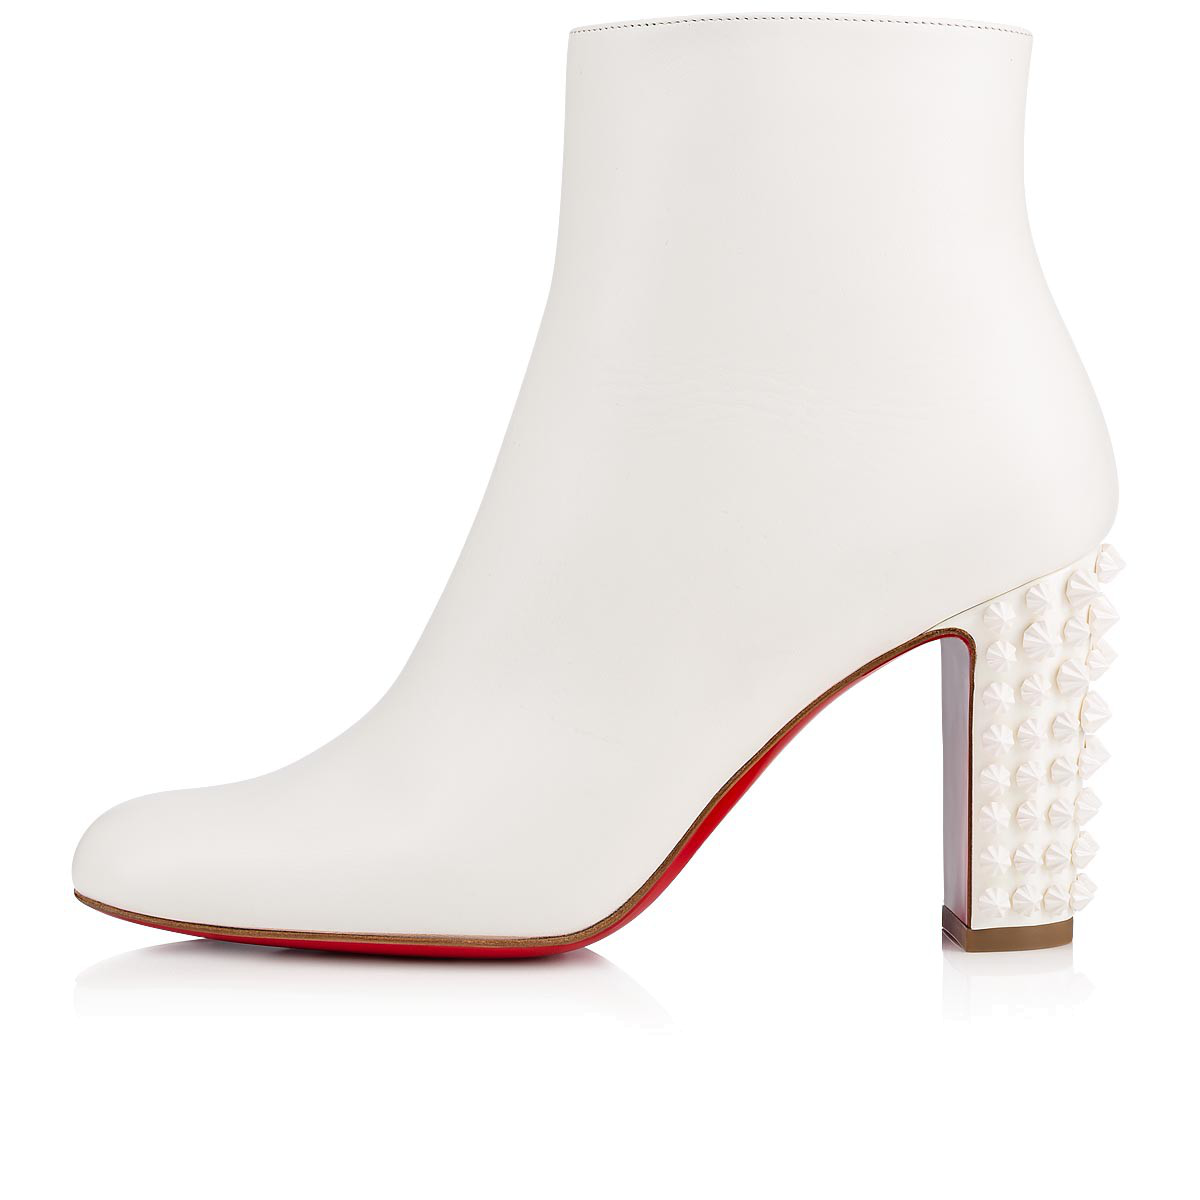 newest 22c71 566ad Suzi Folk 85 Spiked Leather Ankle Boots in White